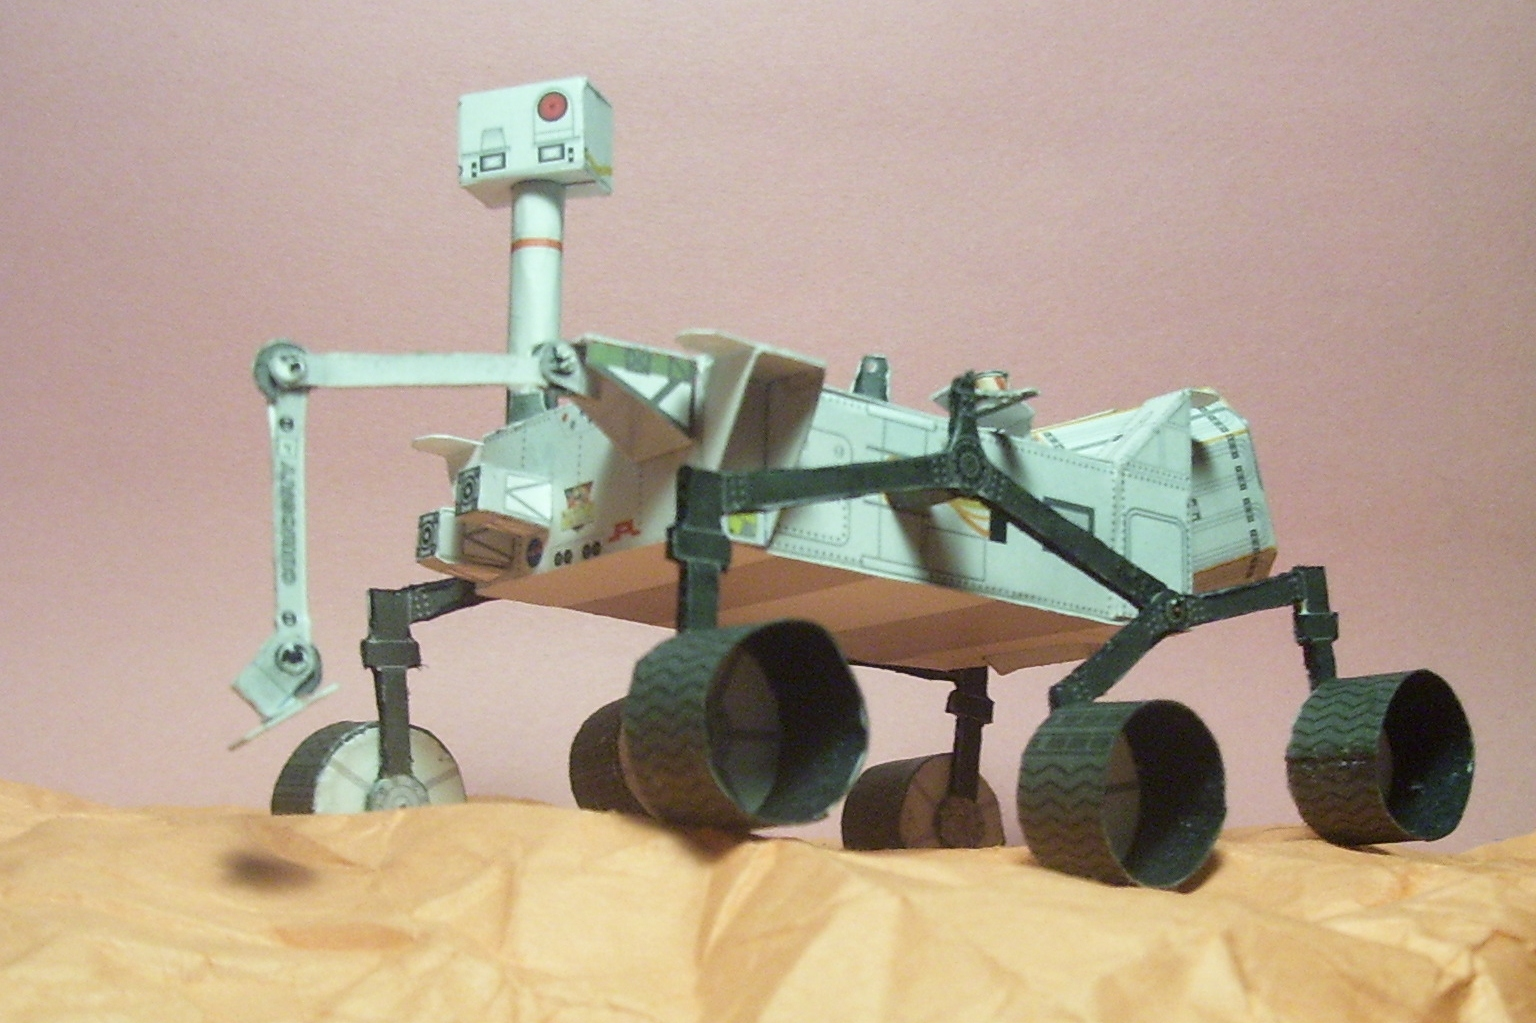 mars rover essays Access to over 100,000 complete essays and term papers sponsored by the united states, landing on the surface of mars for a second time there will be two new powerful mars rovers on board the future plans to explore mars word count.